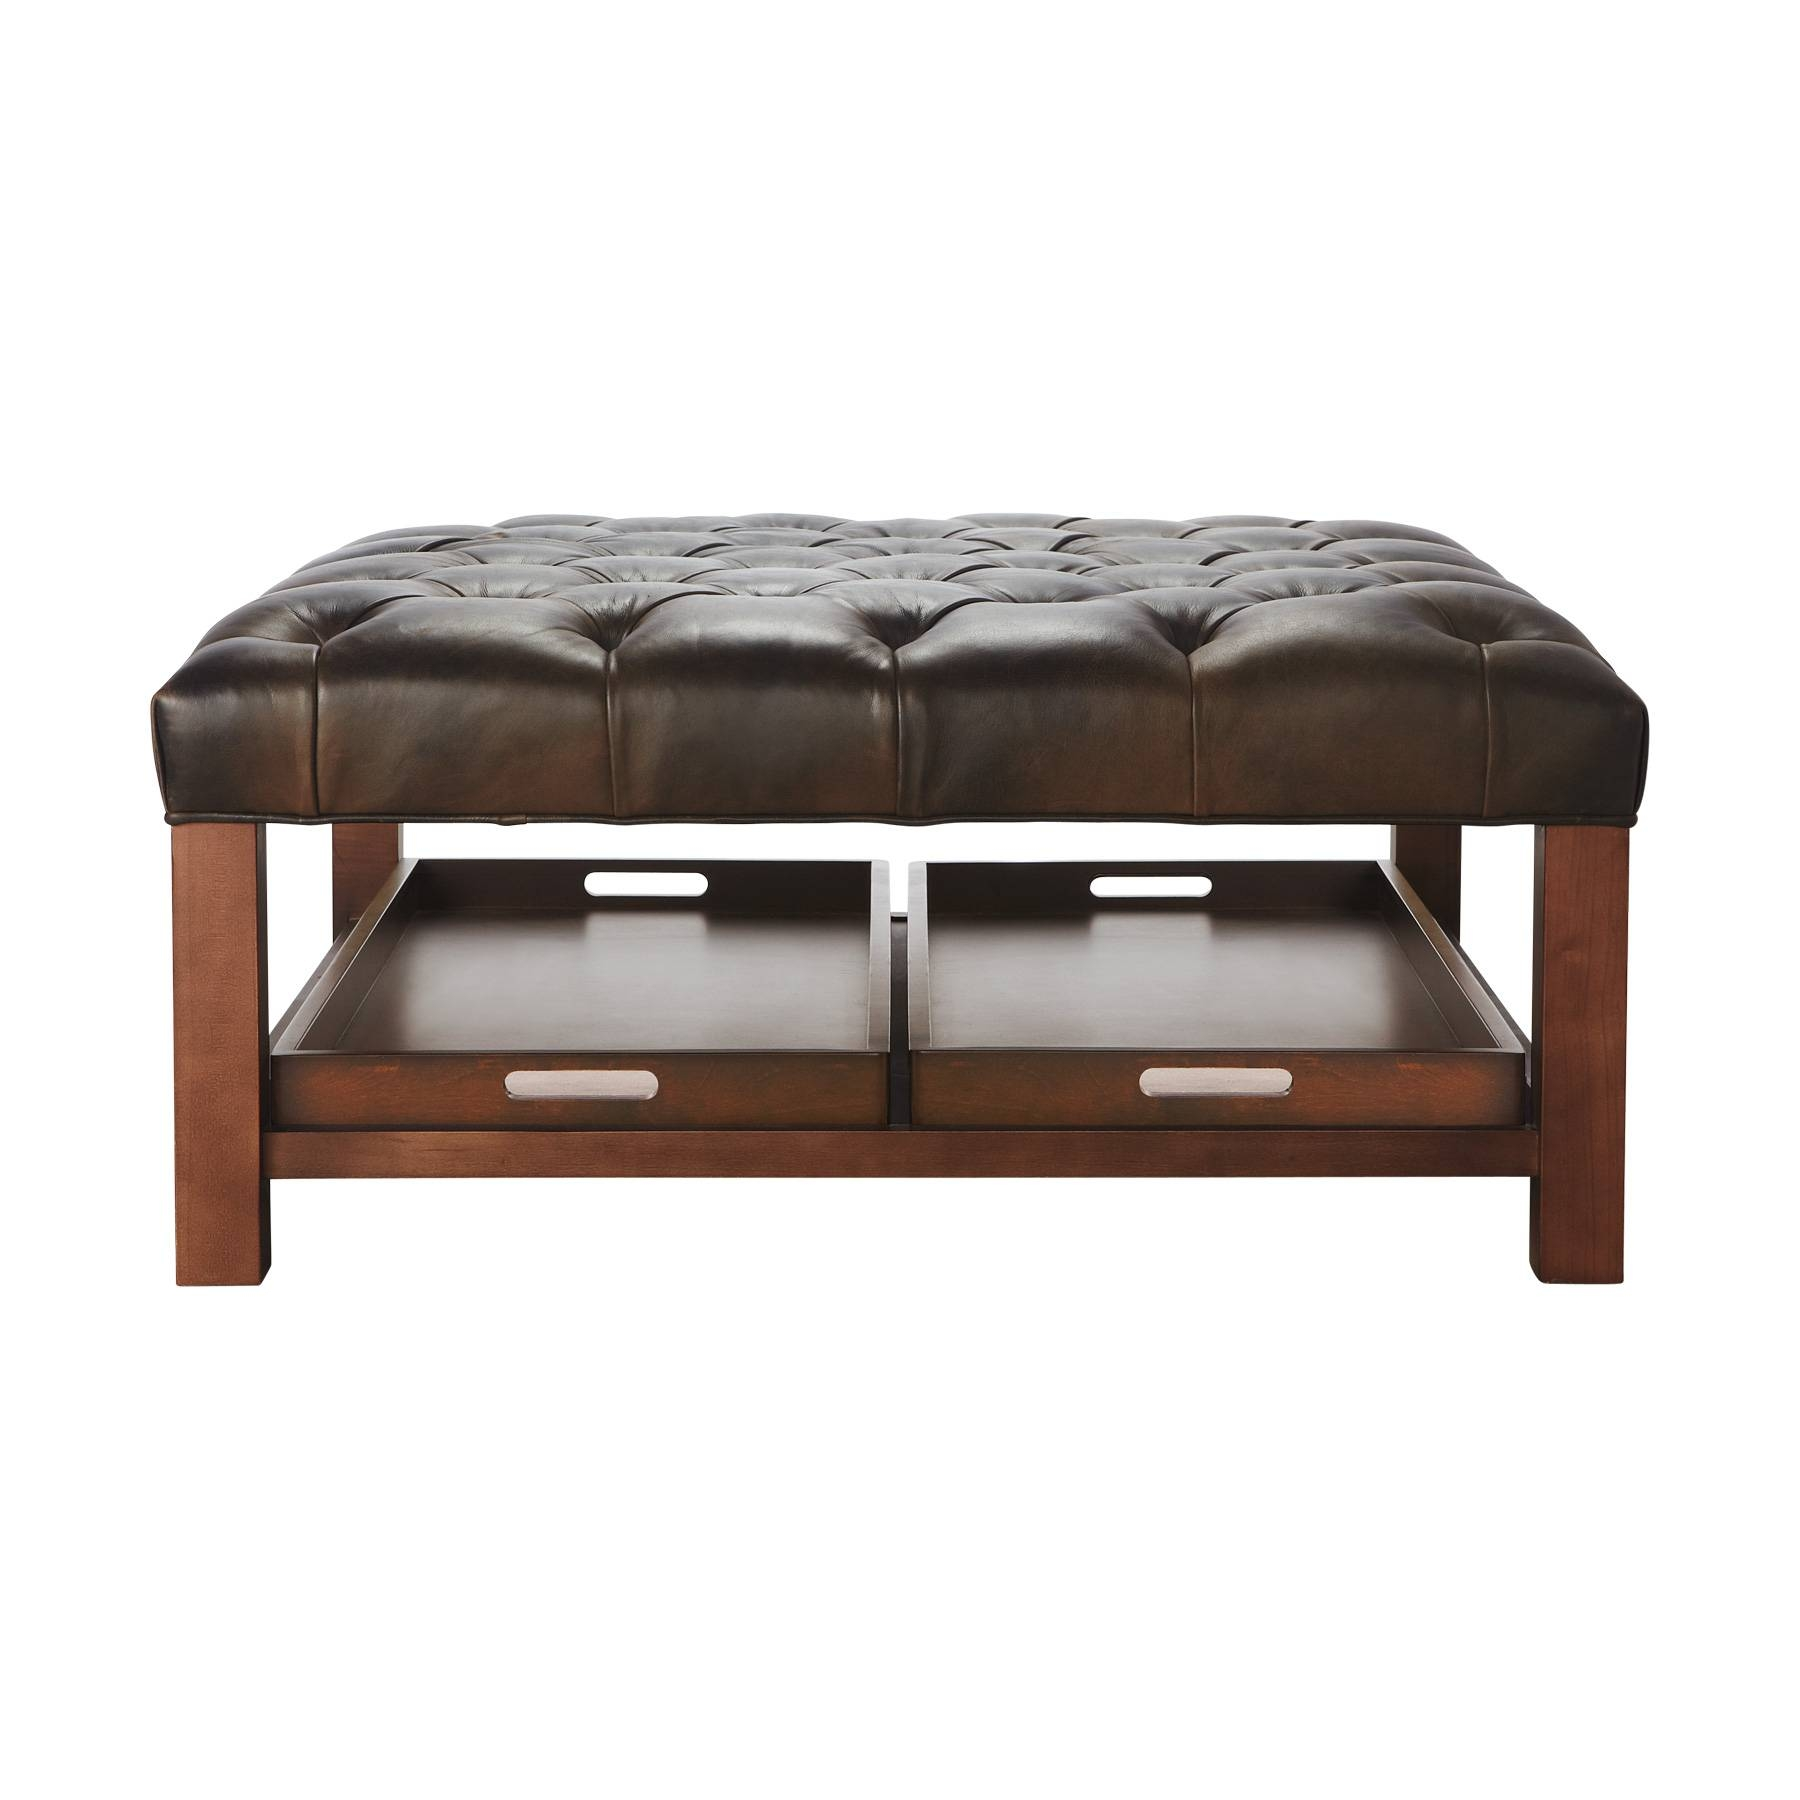 Fancy Modern Leather Ottoman Coffee Table With Shelves And Wooden inside Coffee Tables With Shelves (Image 17 of 30)